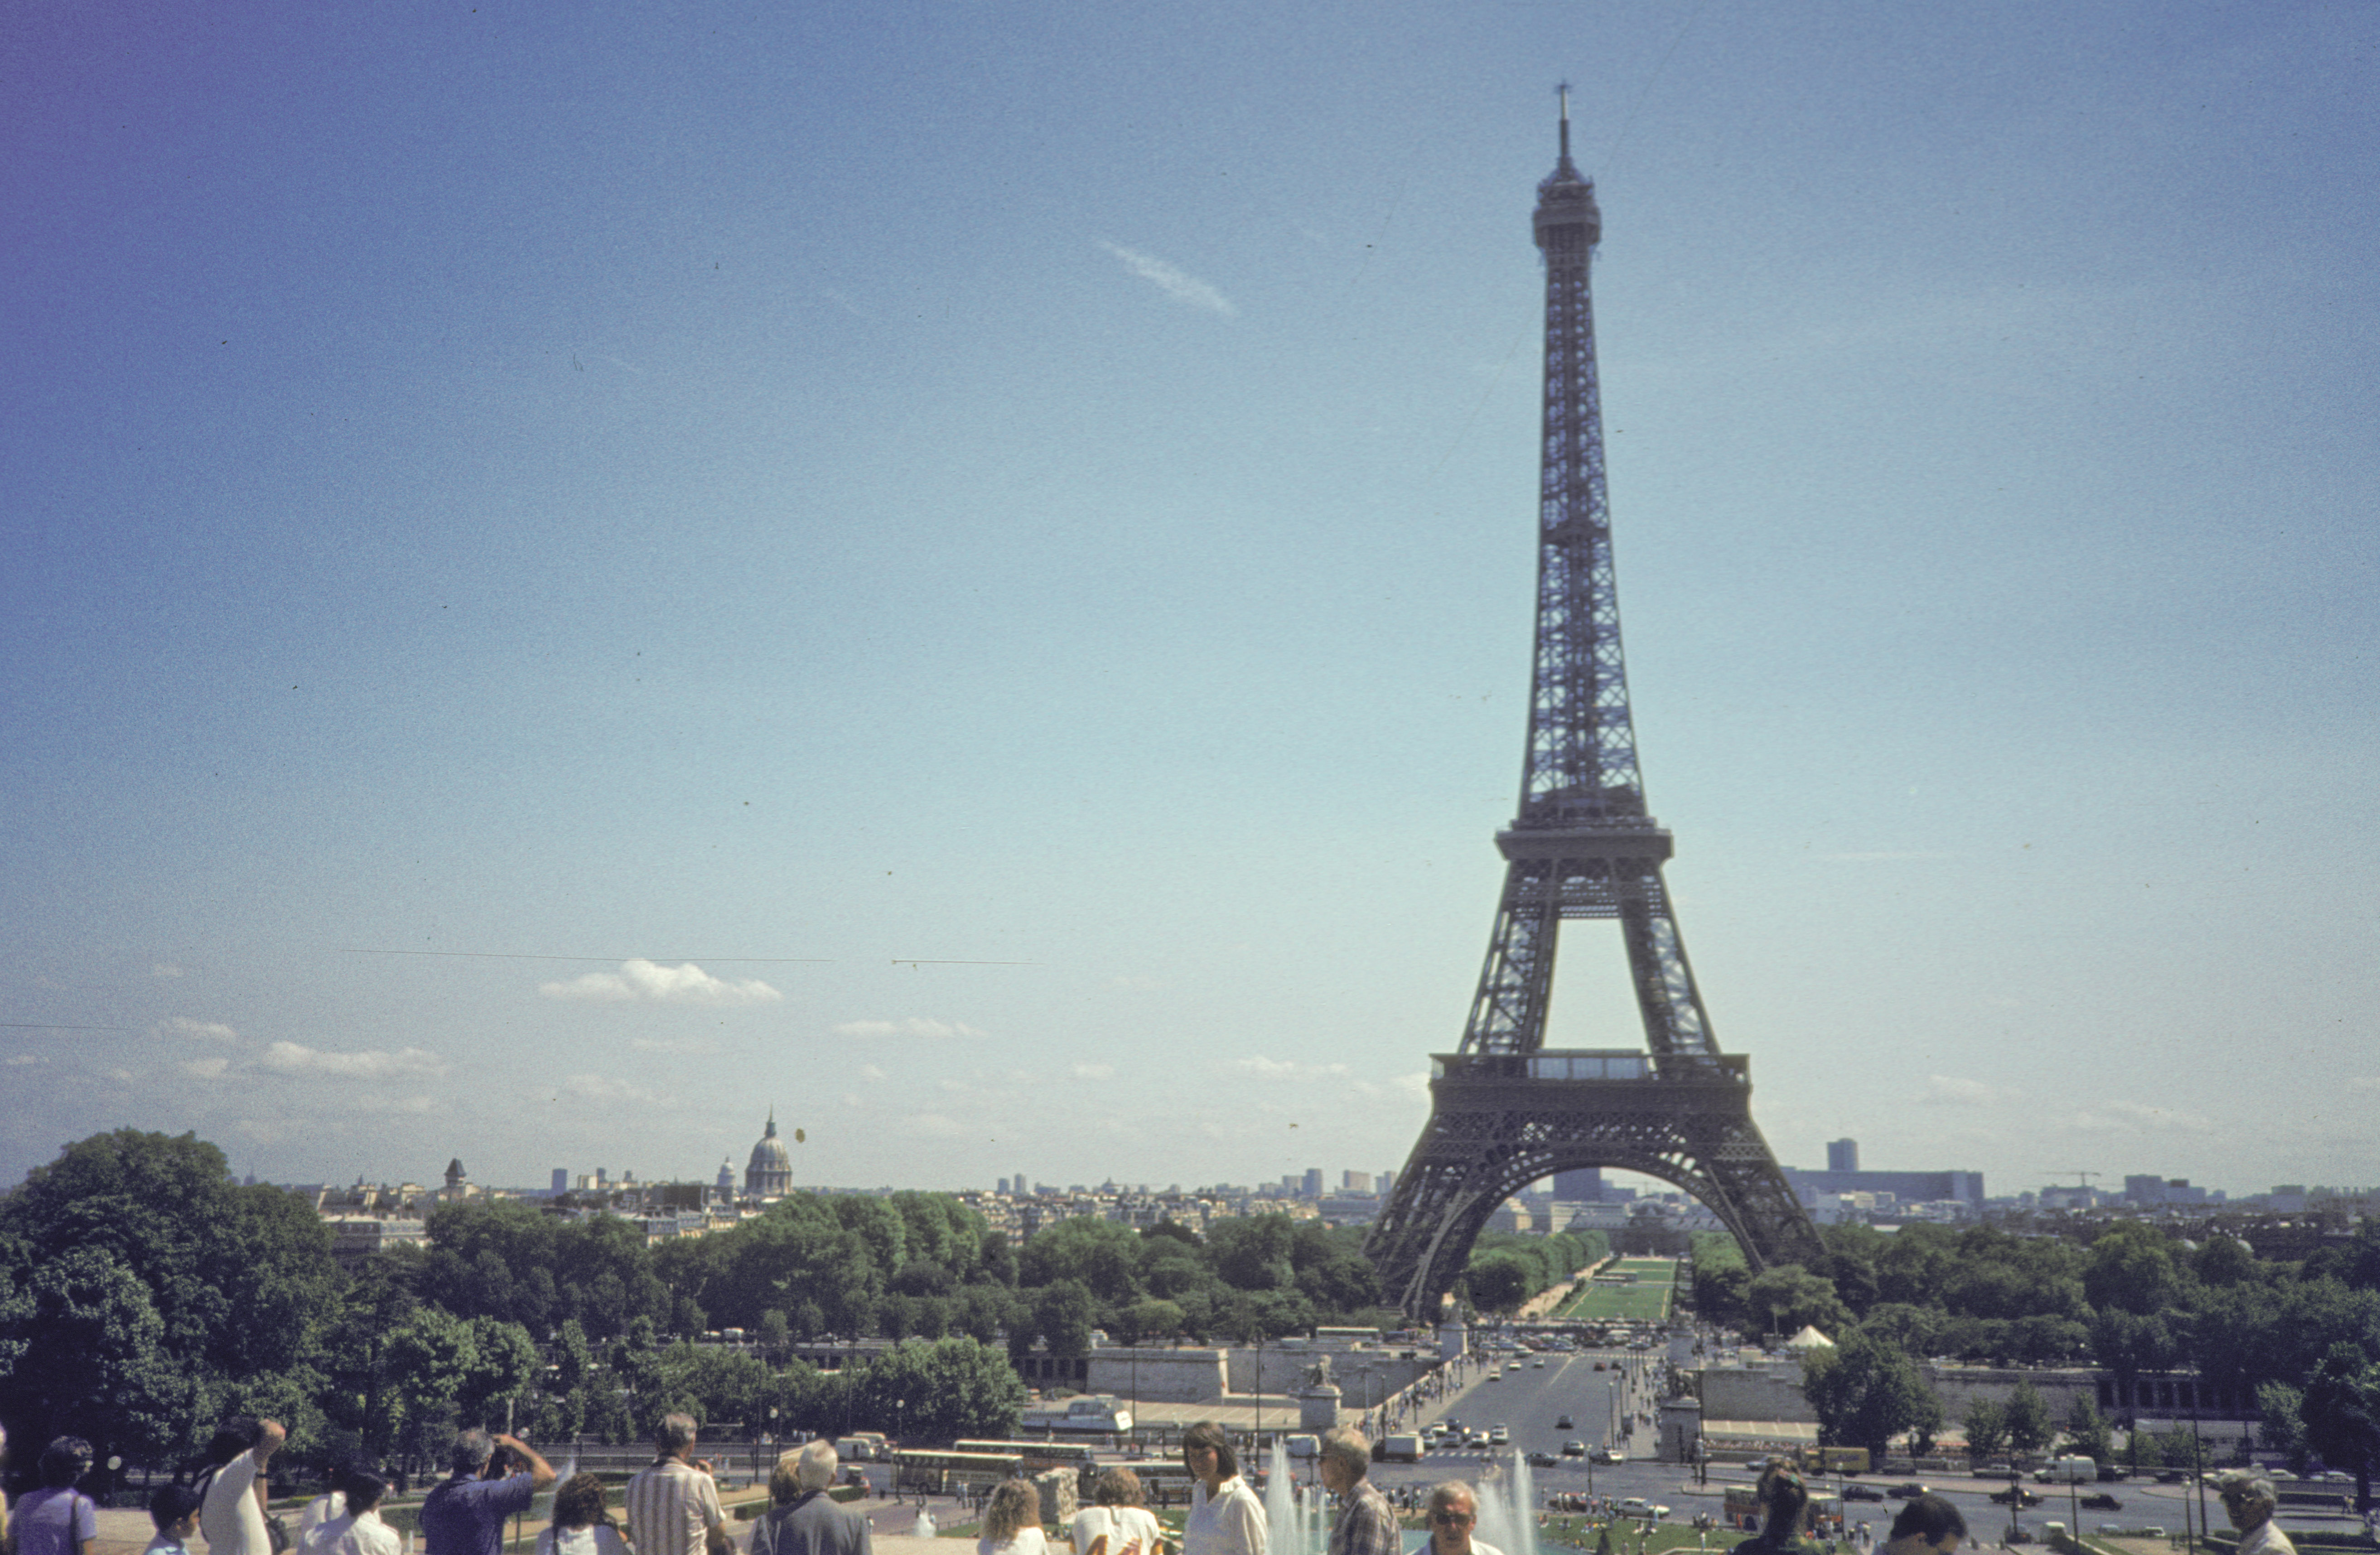 http://upload.wikimedia.org/wikipedia/commons/3/33/Eiffel_Tower_1986-151.jpg